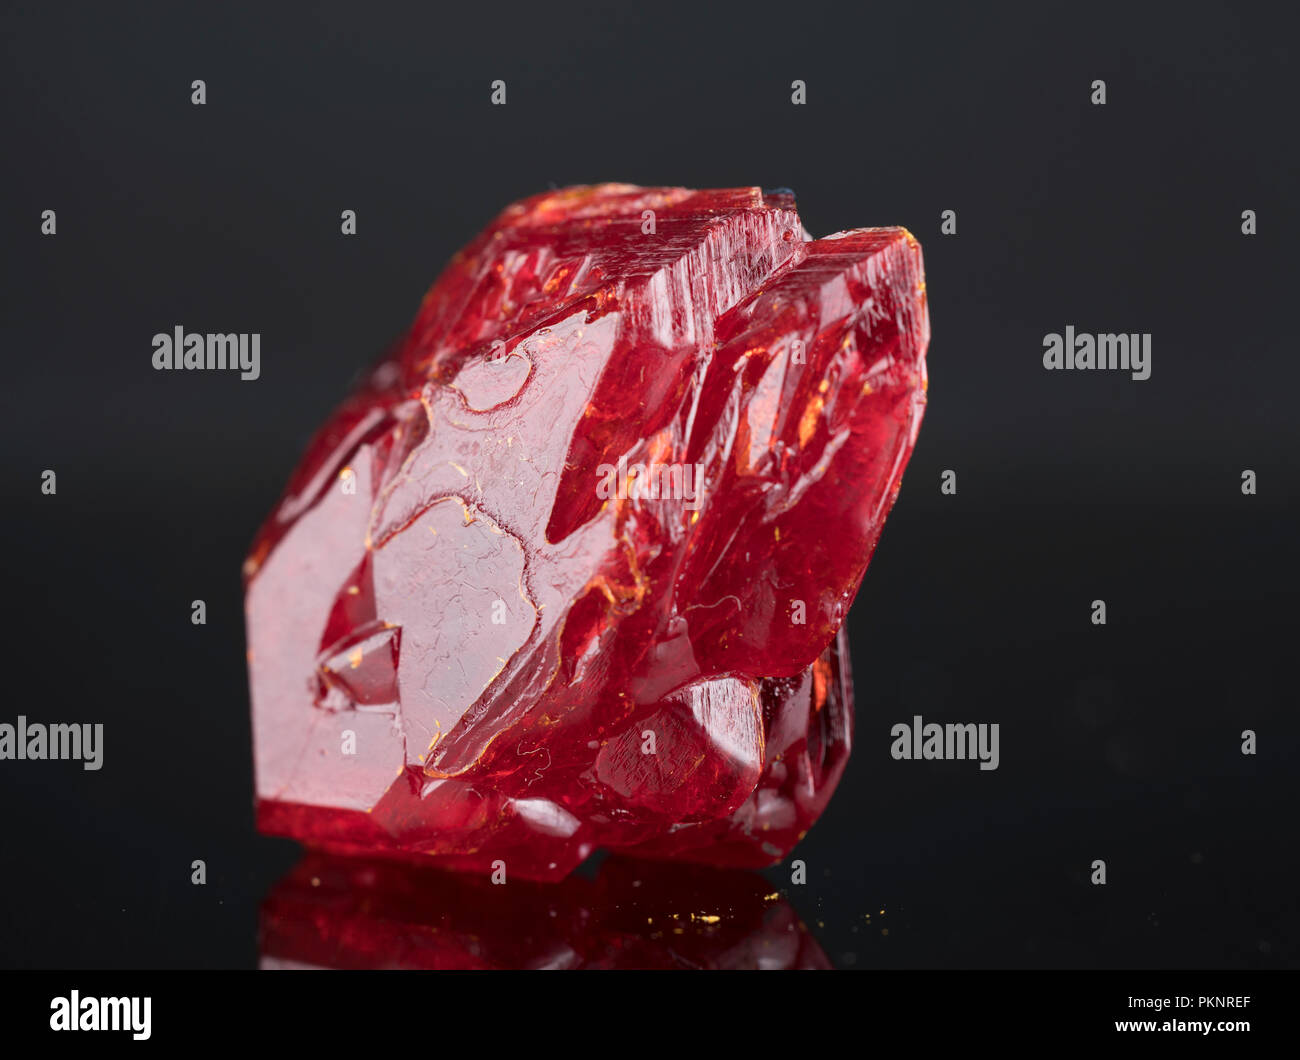 Red mineral. - Stock Image